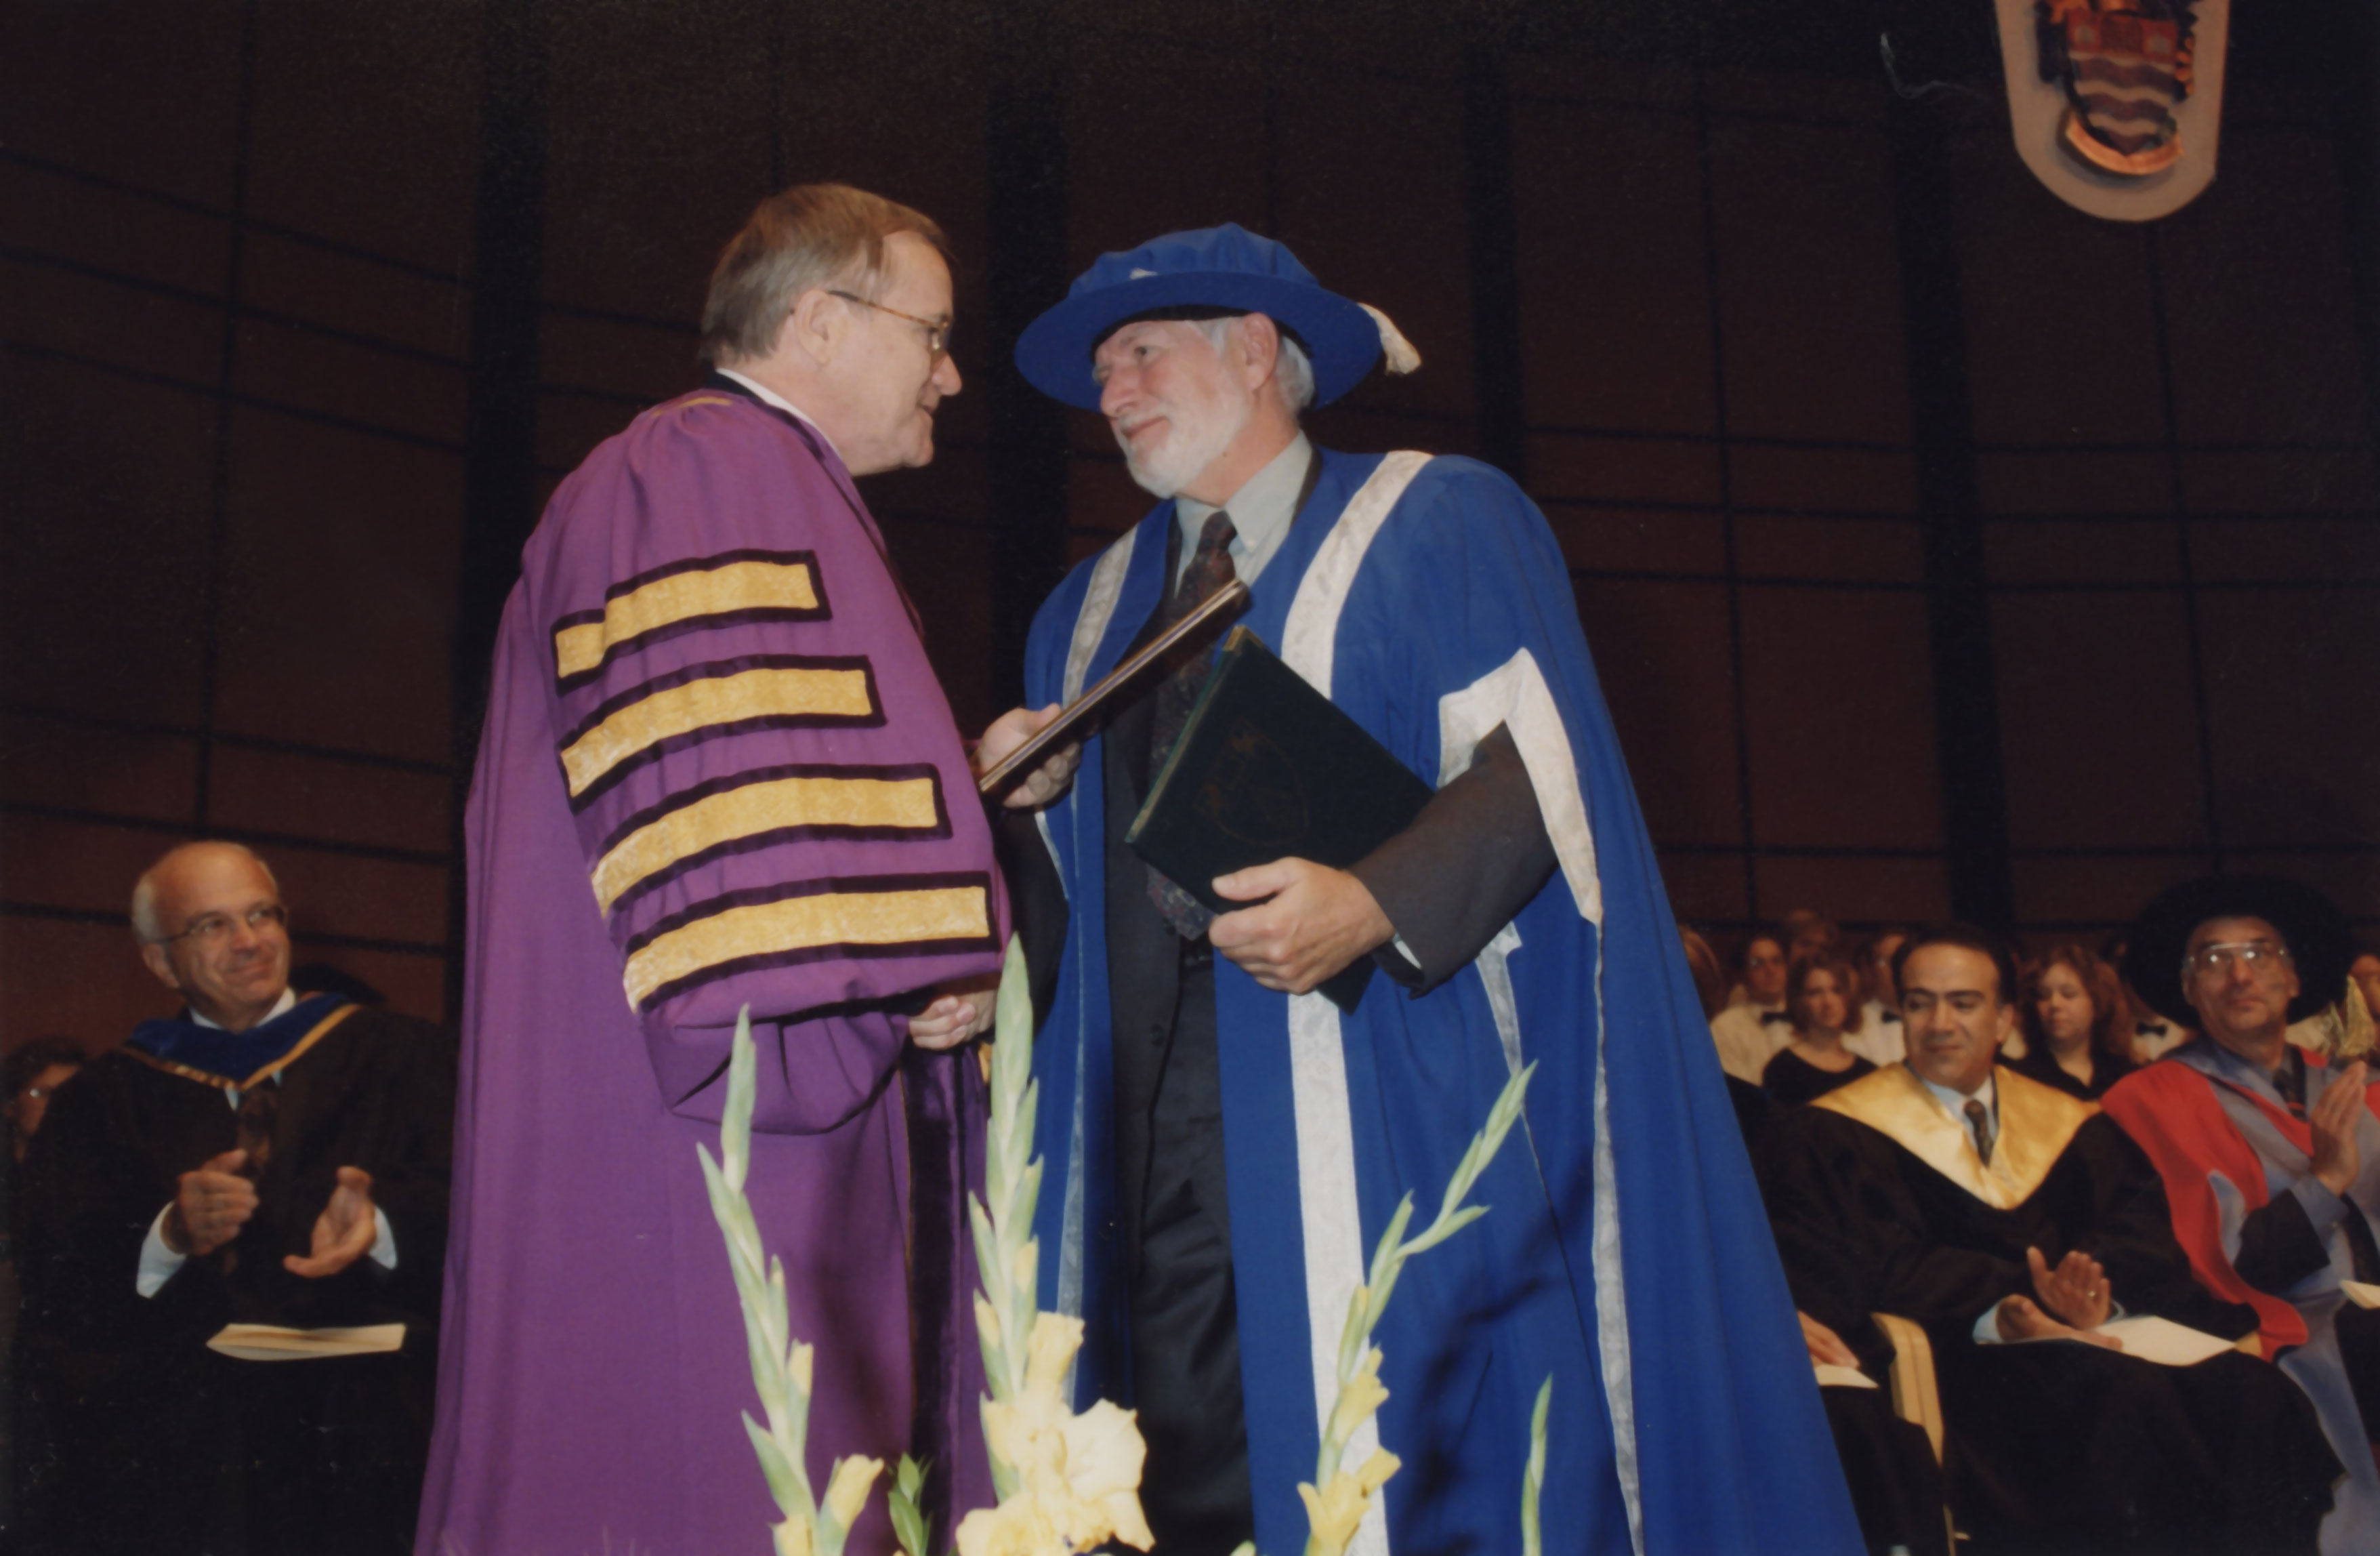 Dr. Fred Gilbert in ceremonial robes during 1998 installation ceremony as Lakehead University president